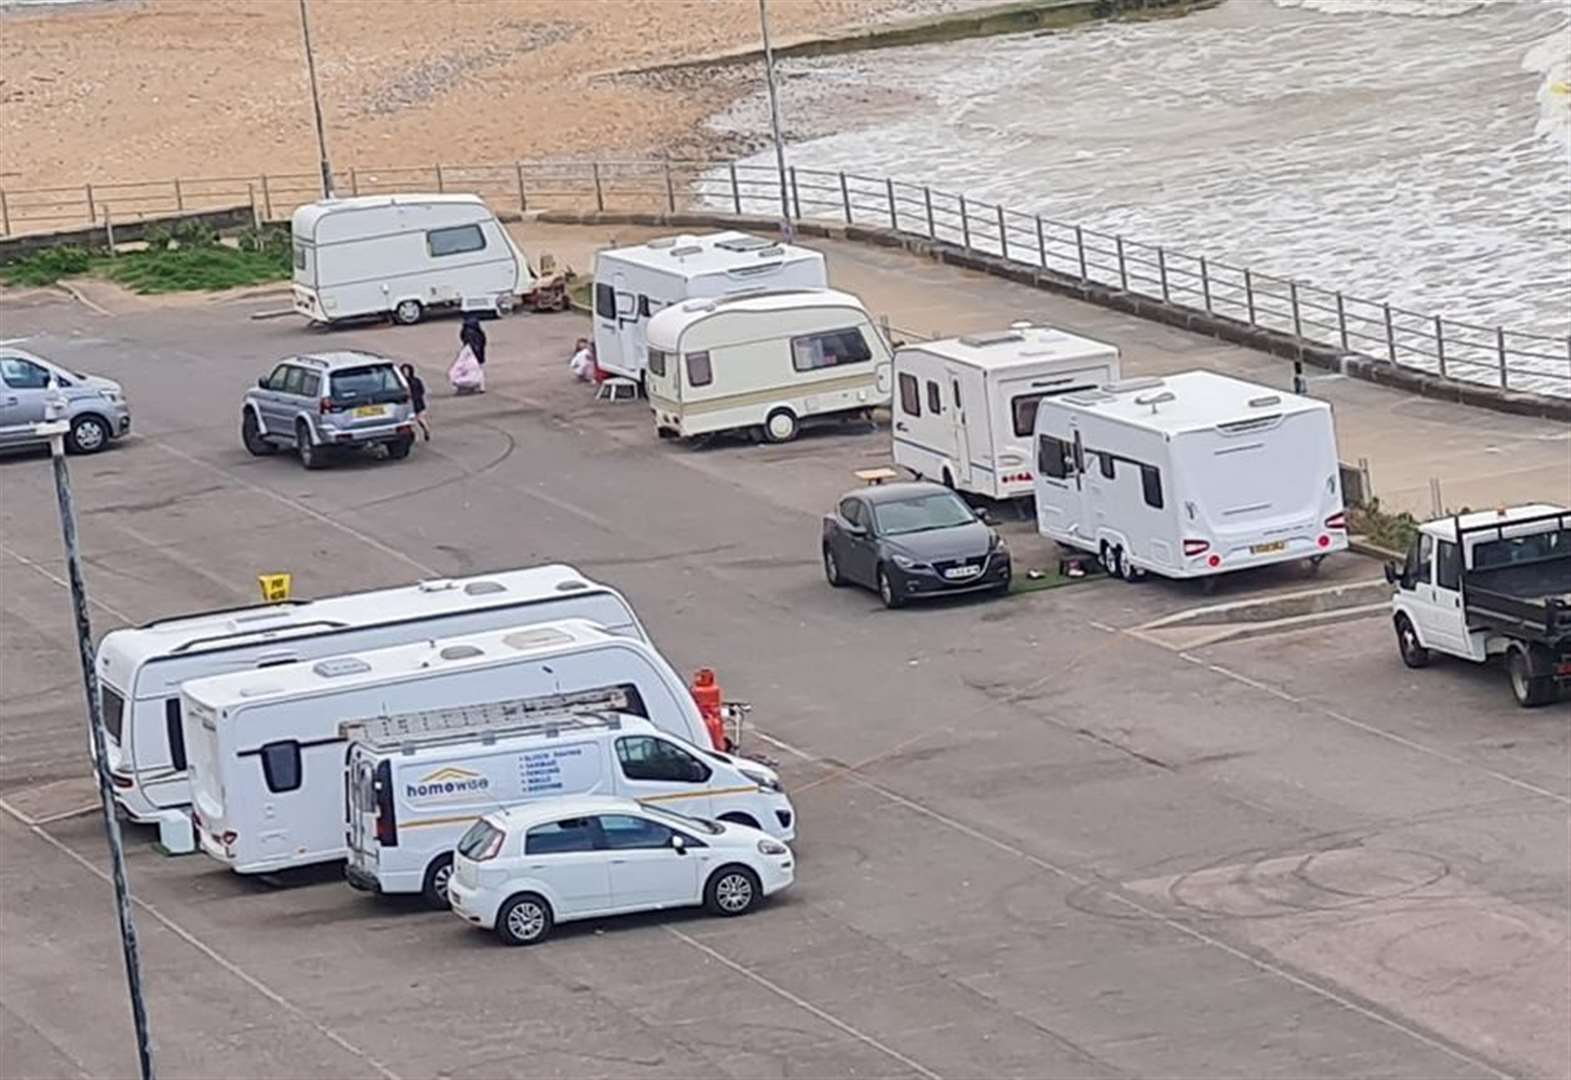 Travellers pitch up at popular seaside spot